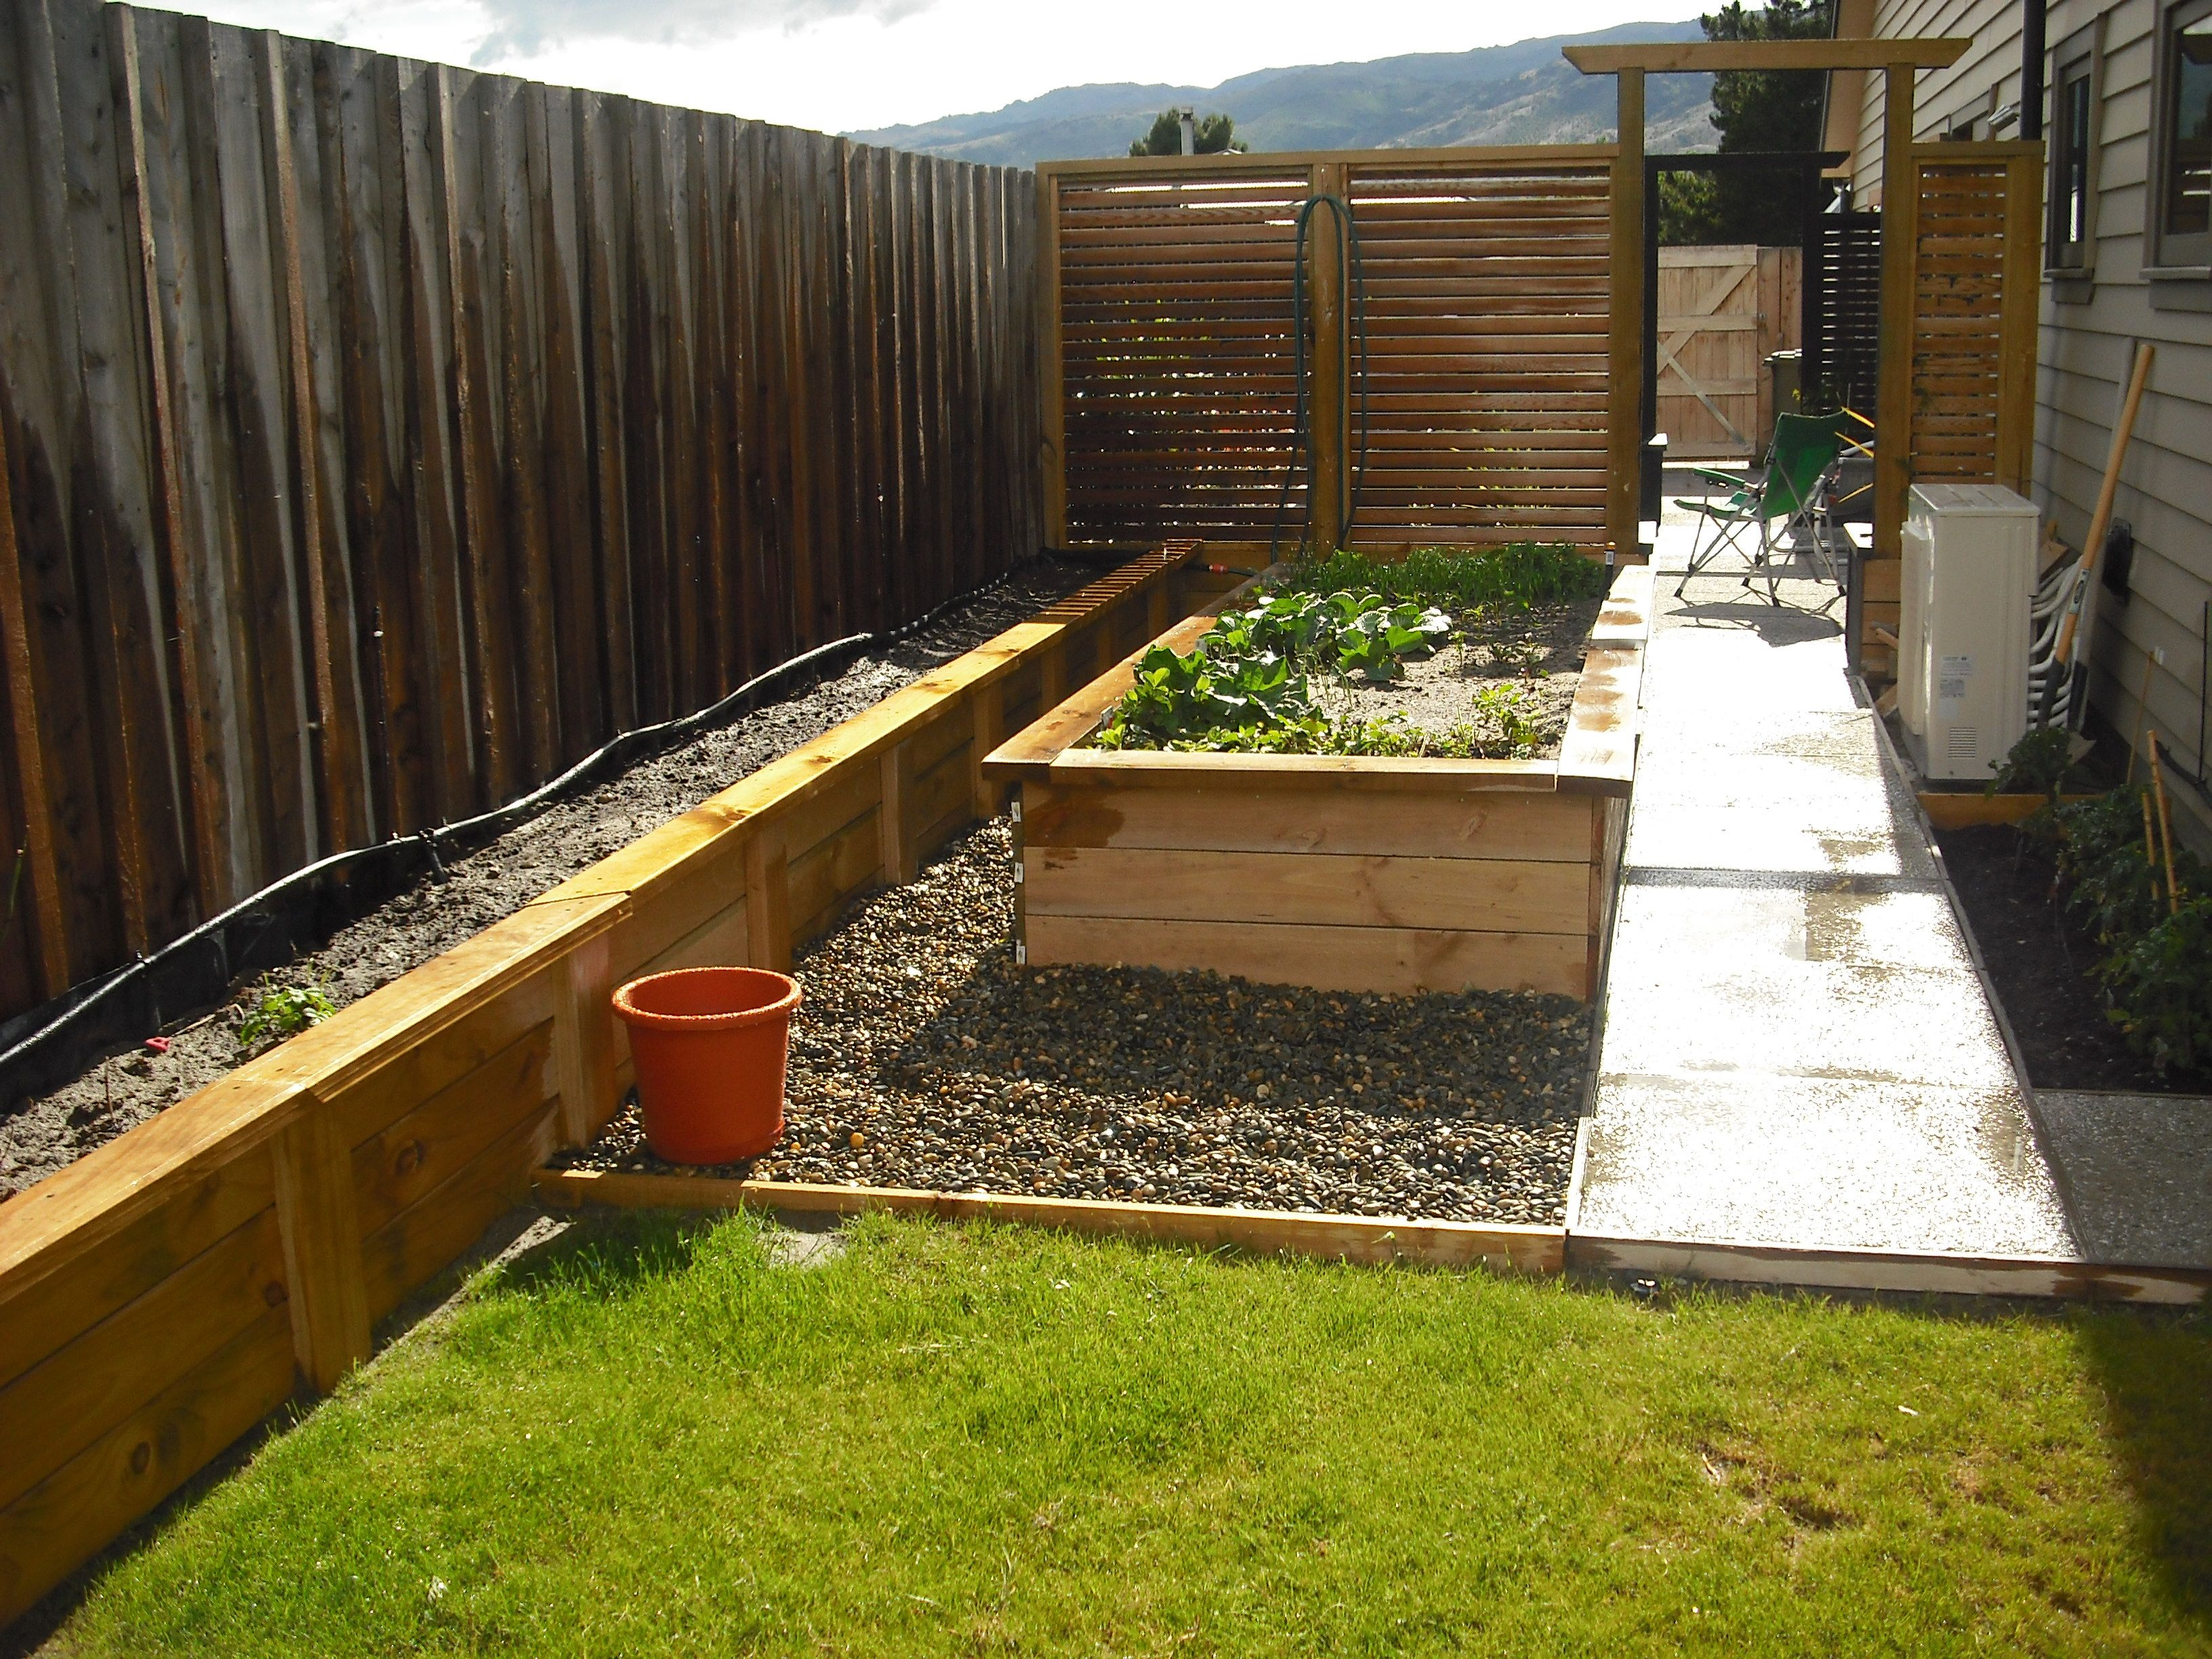 Potatoes Along The Fence, Raised Vegie Bed In The Middle, Tomatoes Against  The Wall